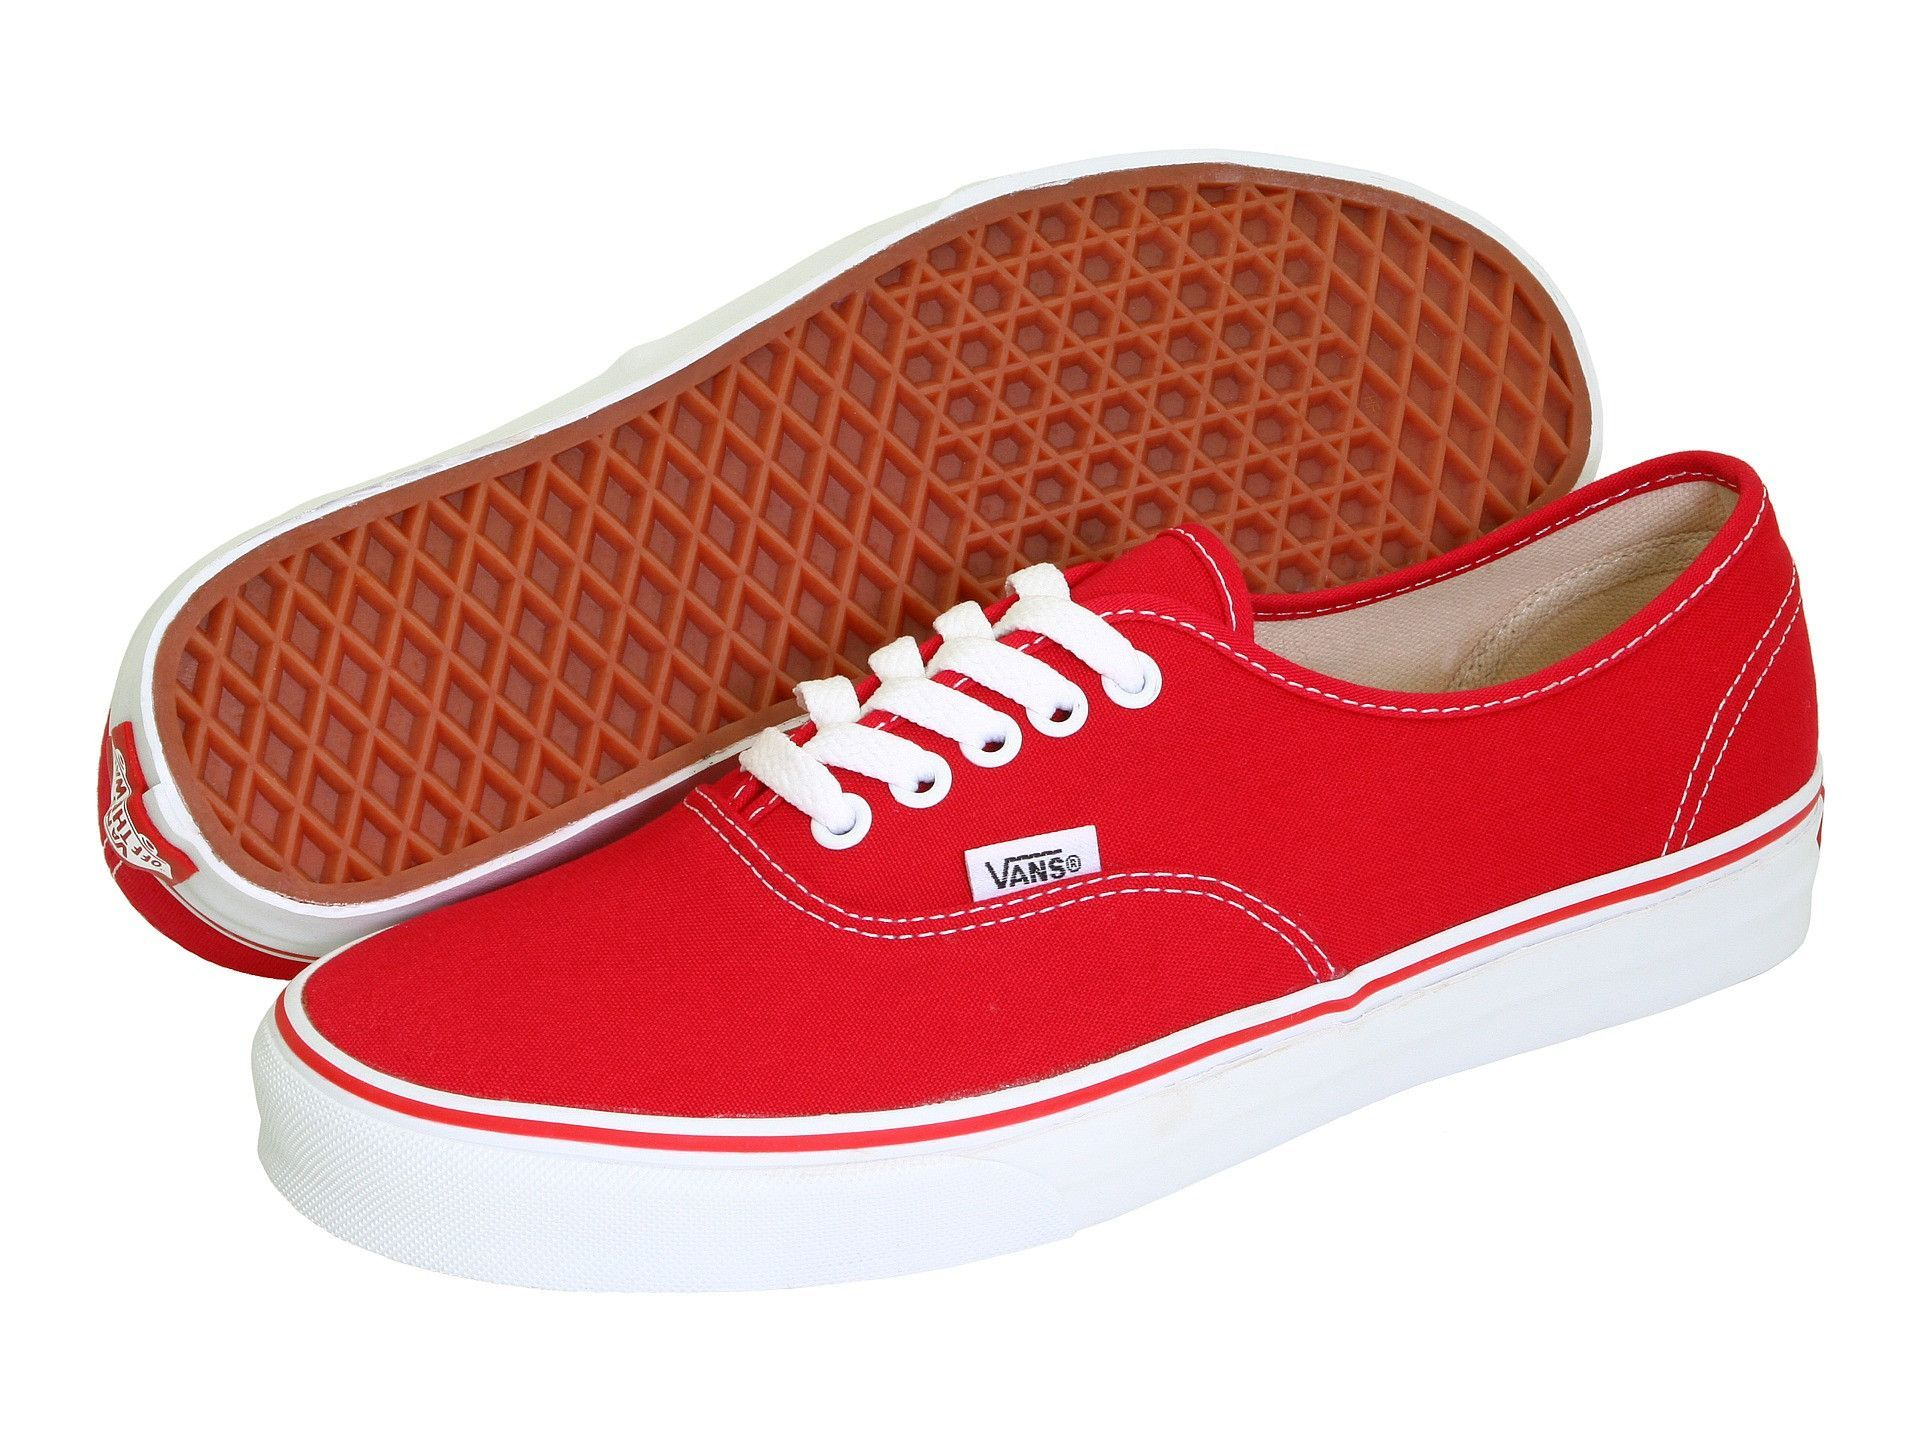 43d0d476e2 VANS Authentic Women